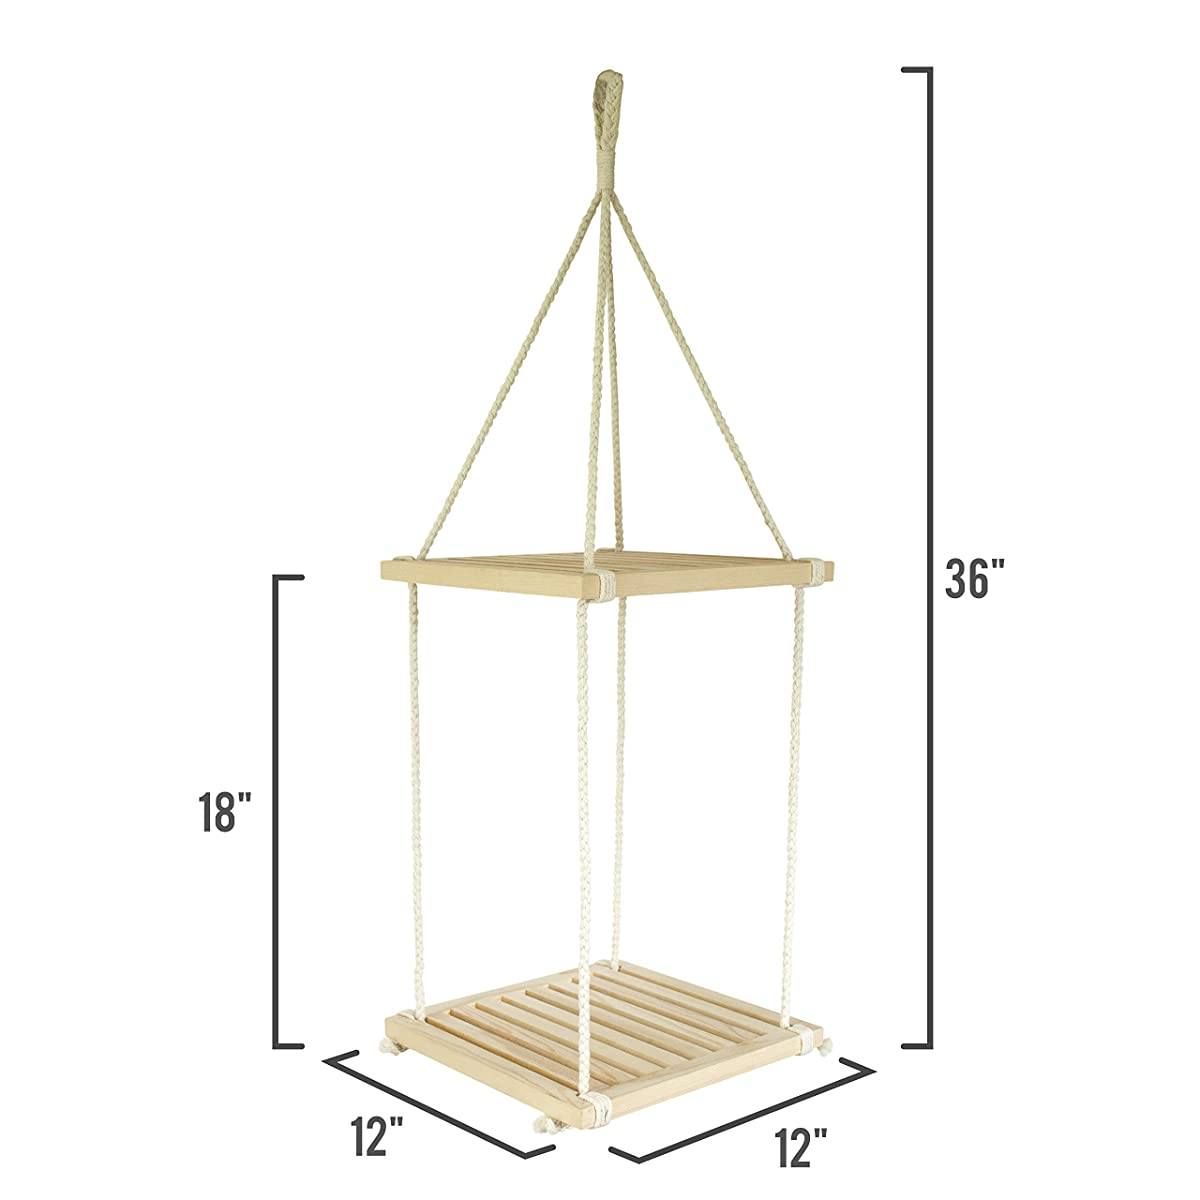 23 Bees | Macrame Hanging Shelf | Planter Holder & Floating Shelves | Handcrafted Wood with Rope and Hanger (2 Wooden Square Layers)